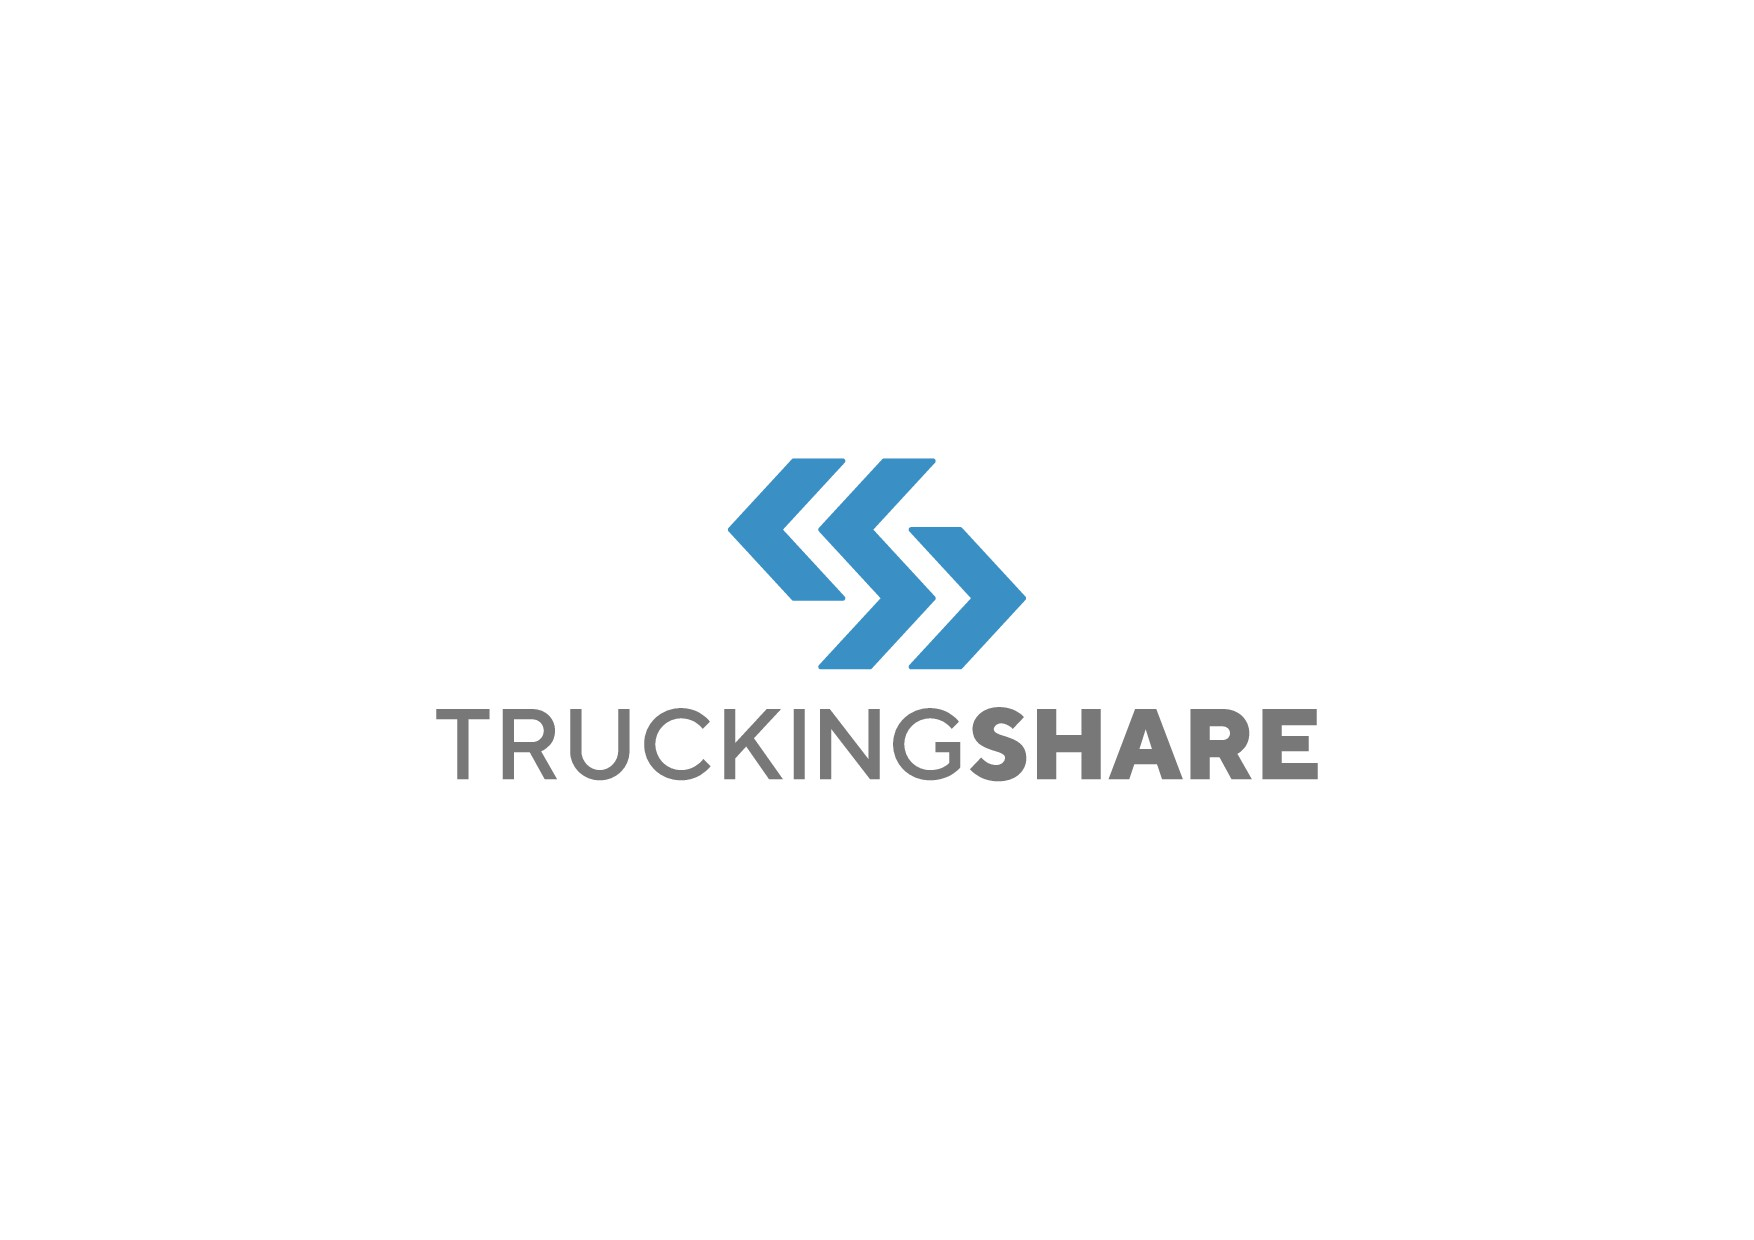 Logo for media company focusing on the business of trucking